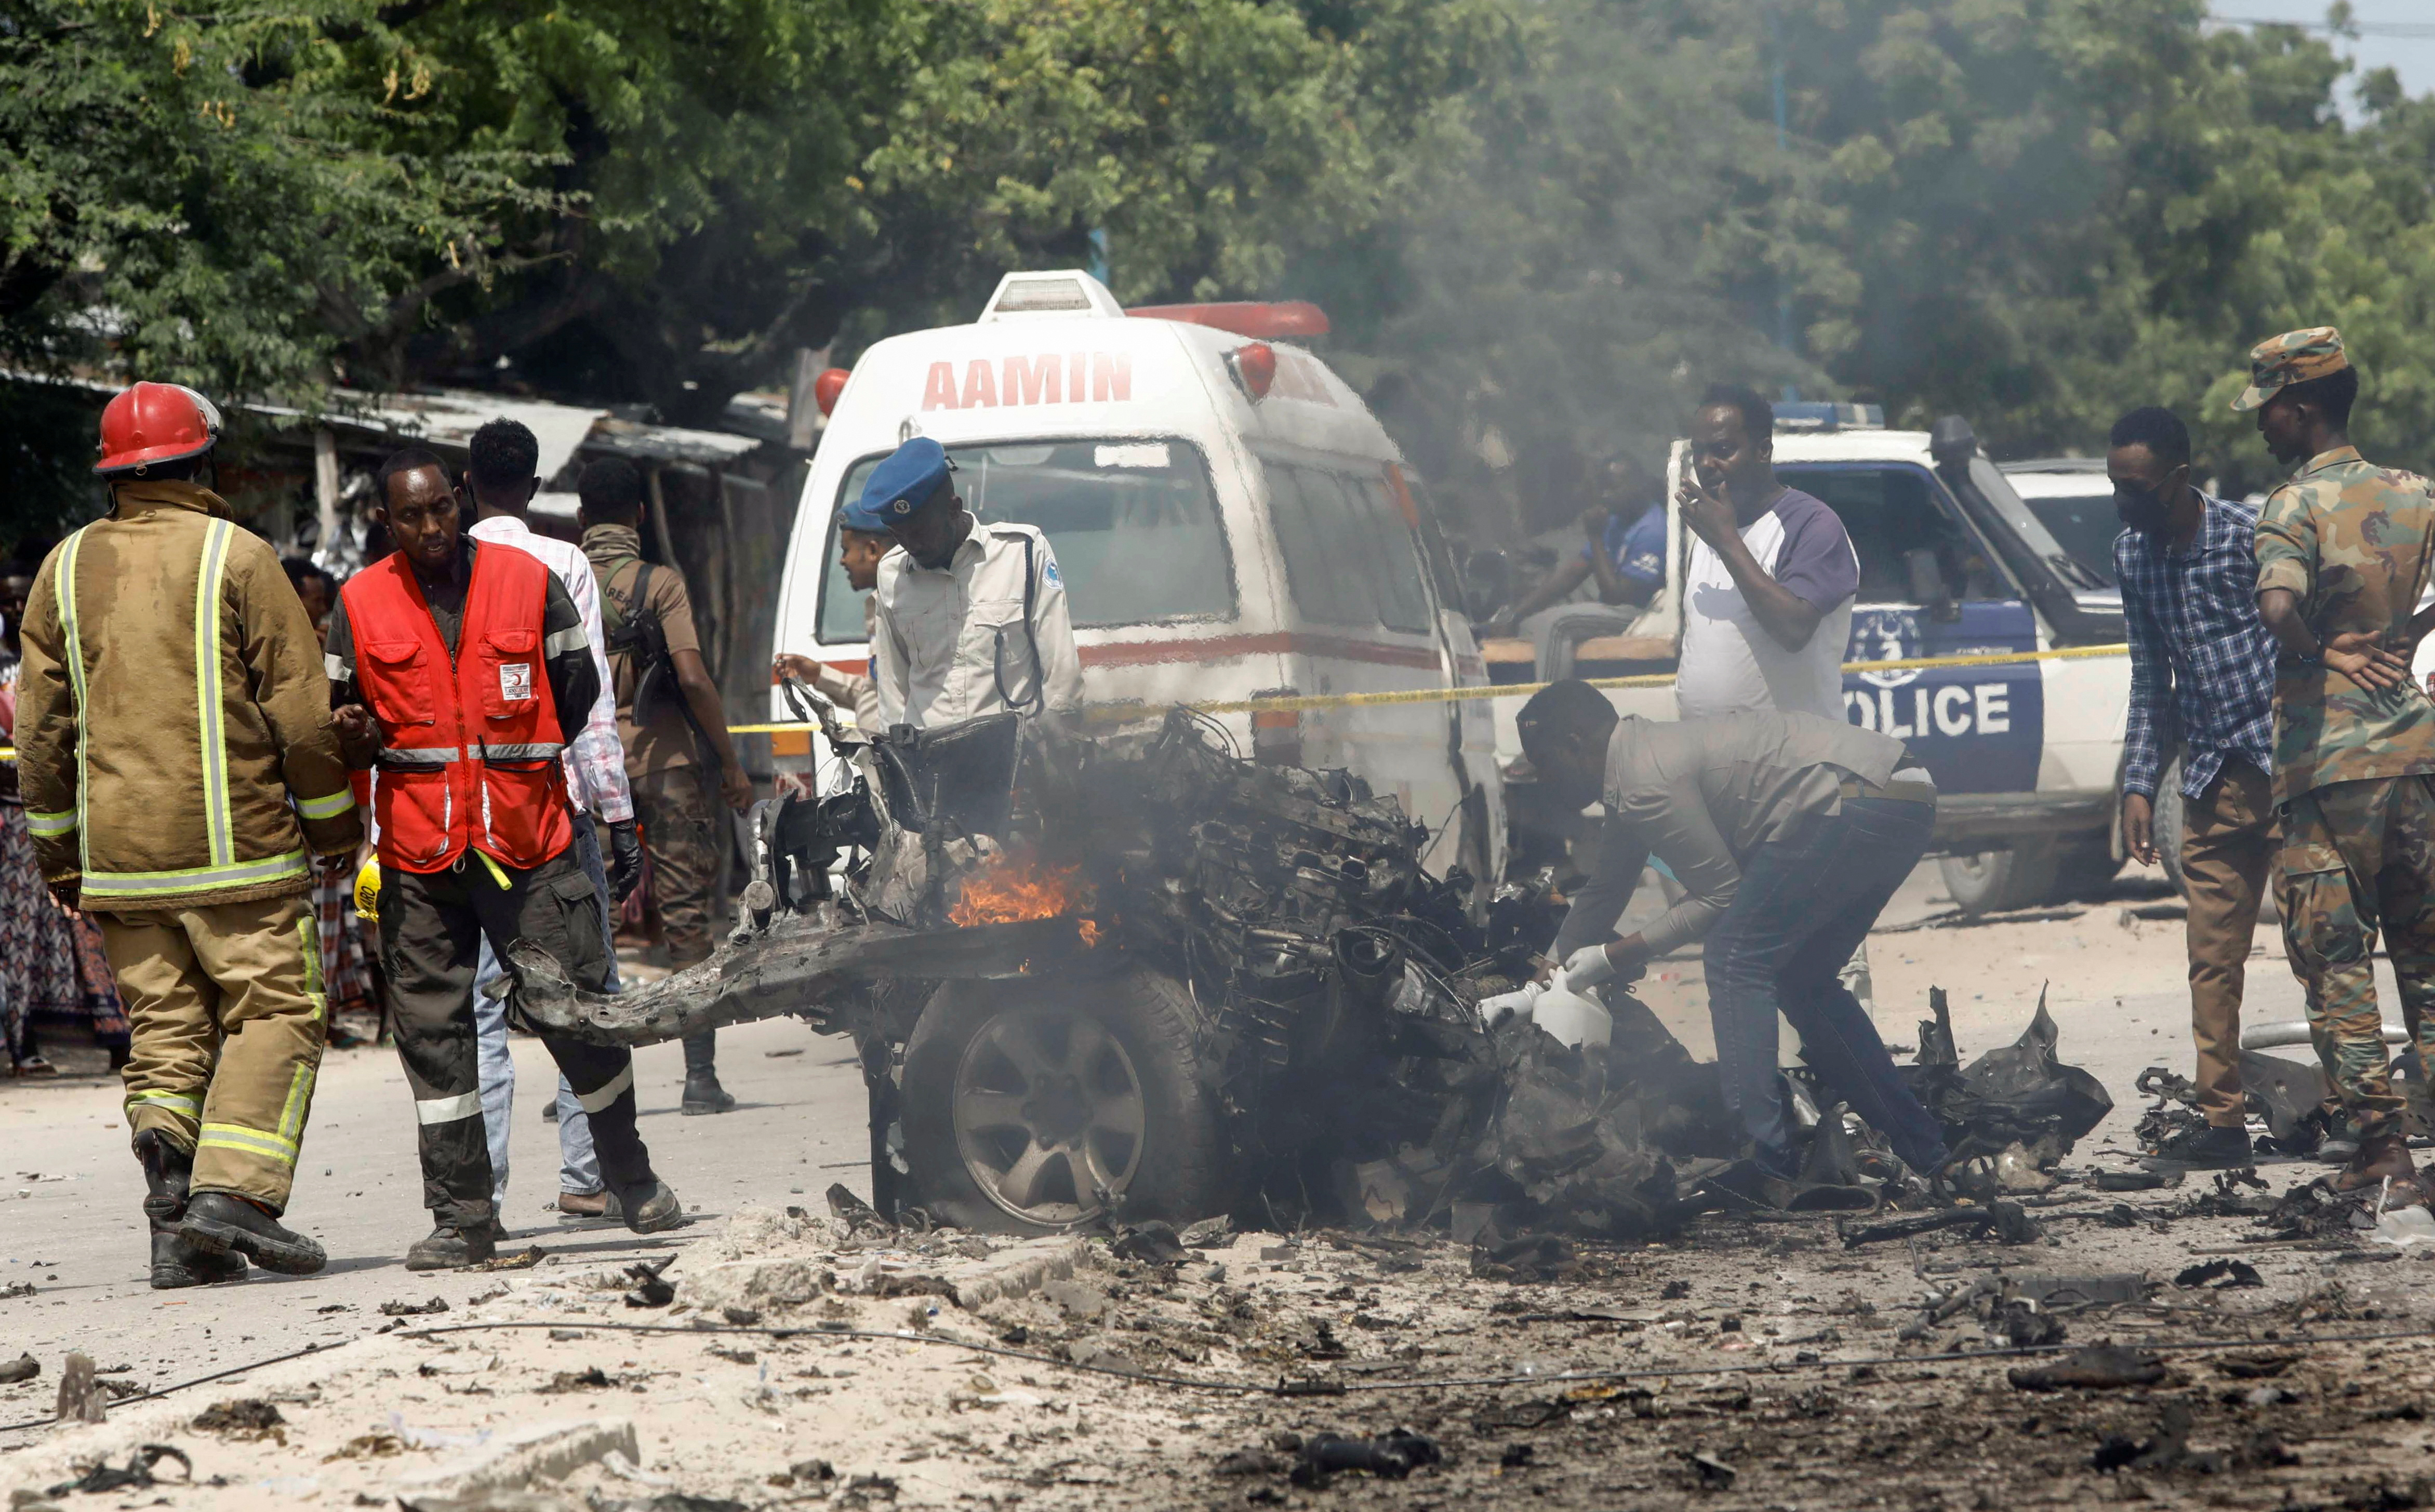 At Least 8 Killed in Mogadishu by Suicide Car Bomb Targeting Government Convoy